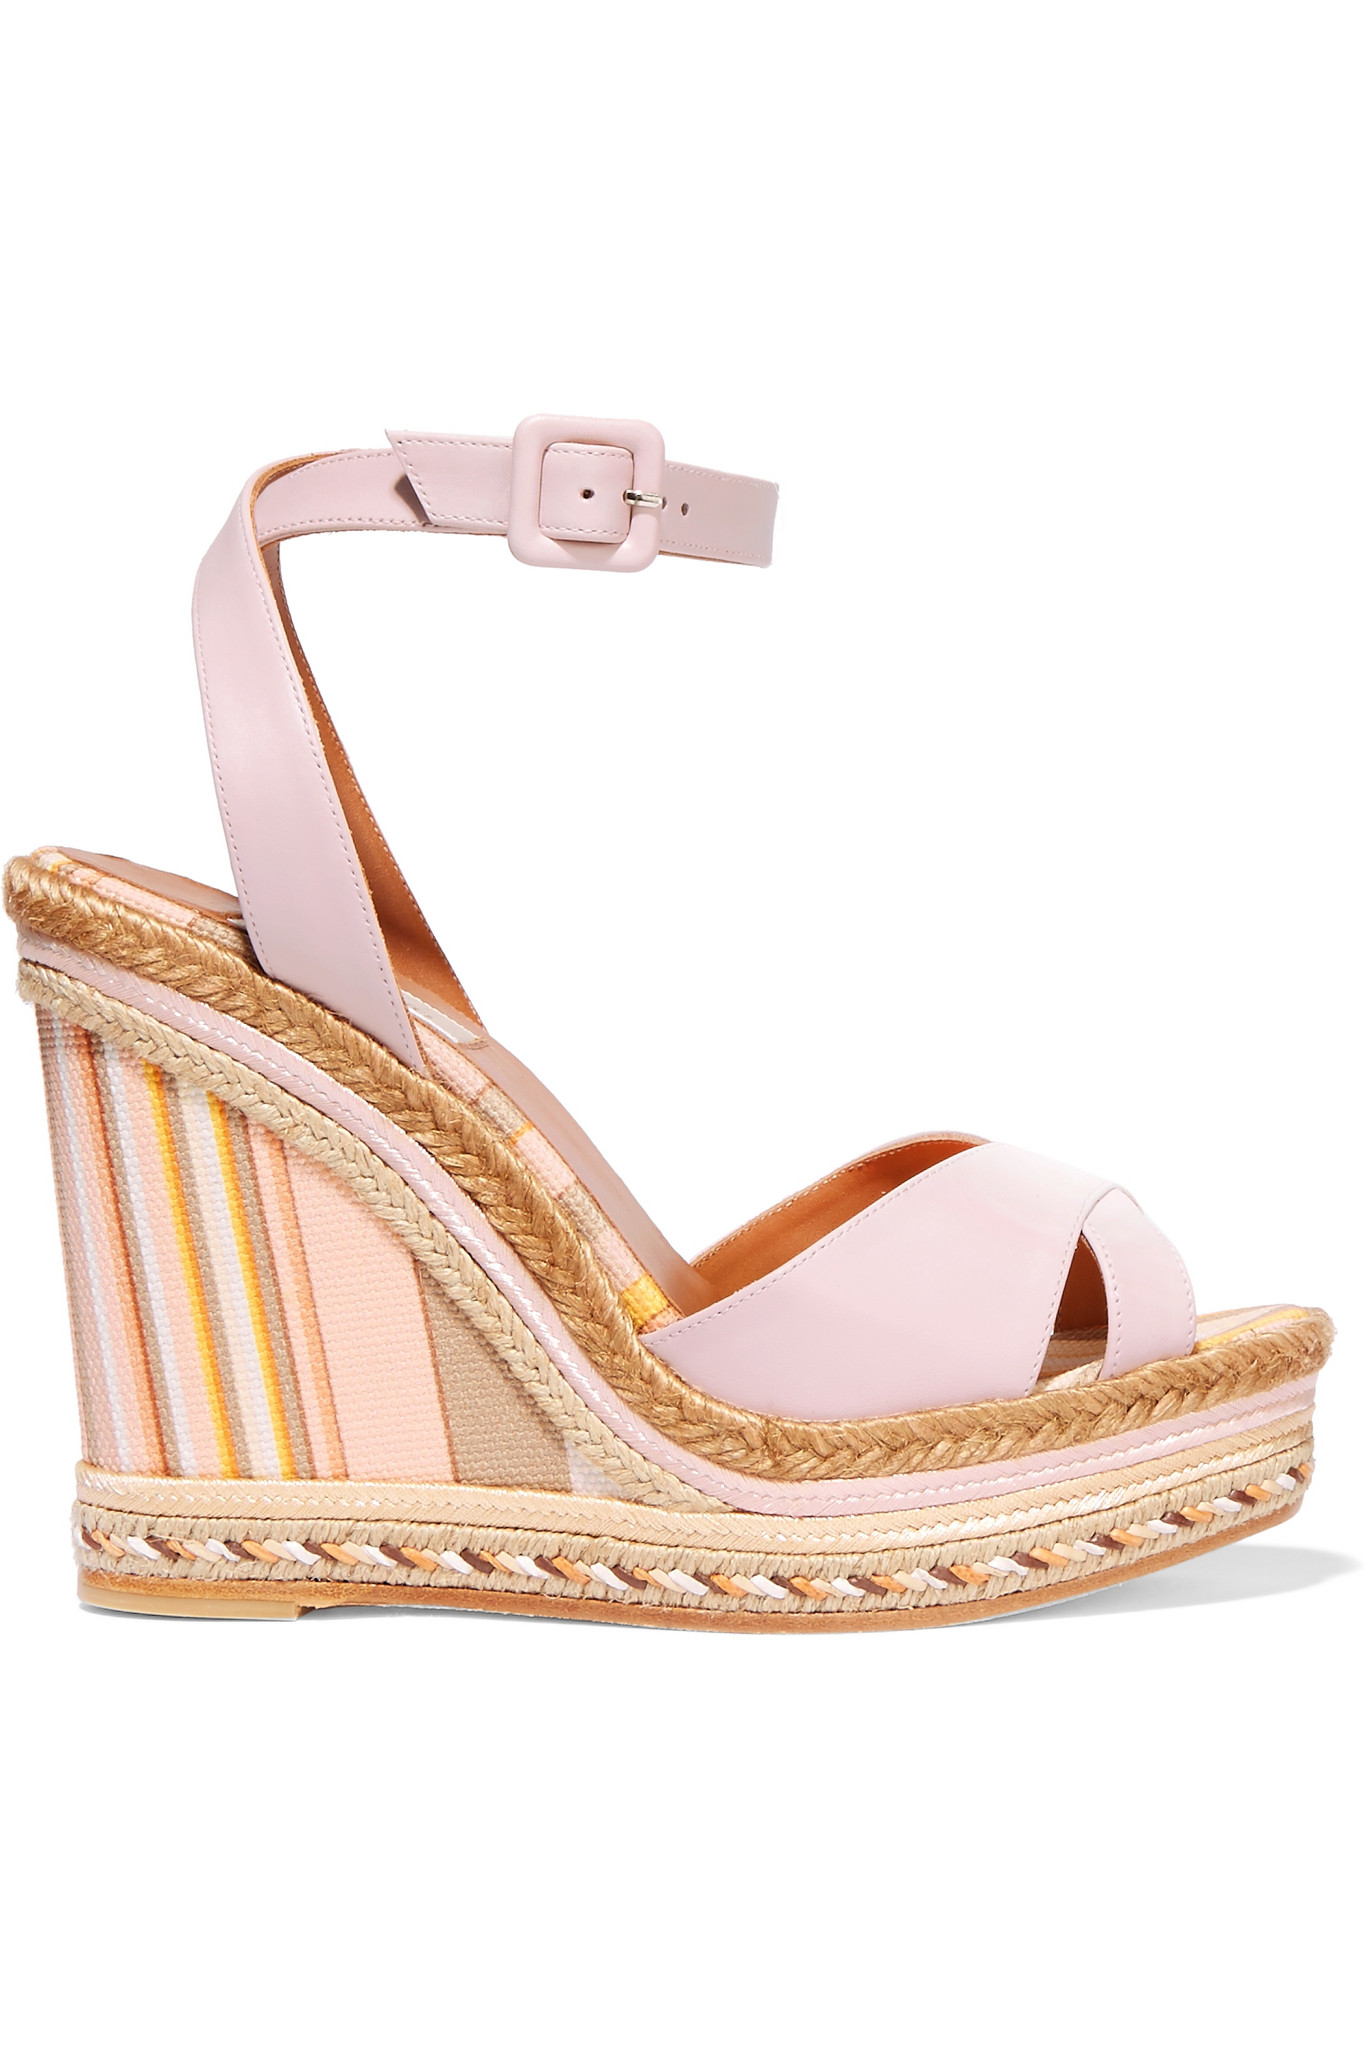 brand new unisex websites Valentino Canvas Slingback Wedges clearance latest collections free shipping very cheap 8pfwq